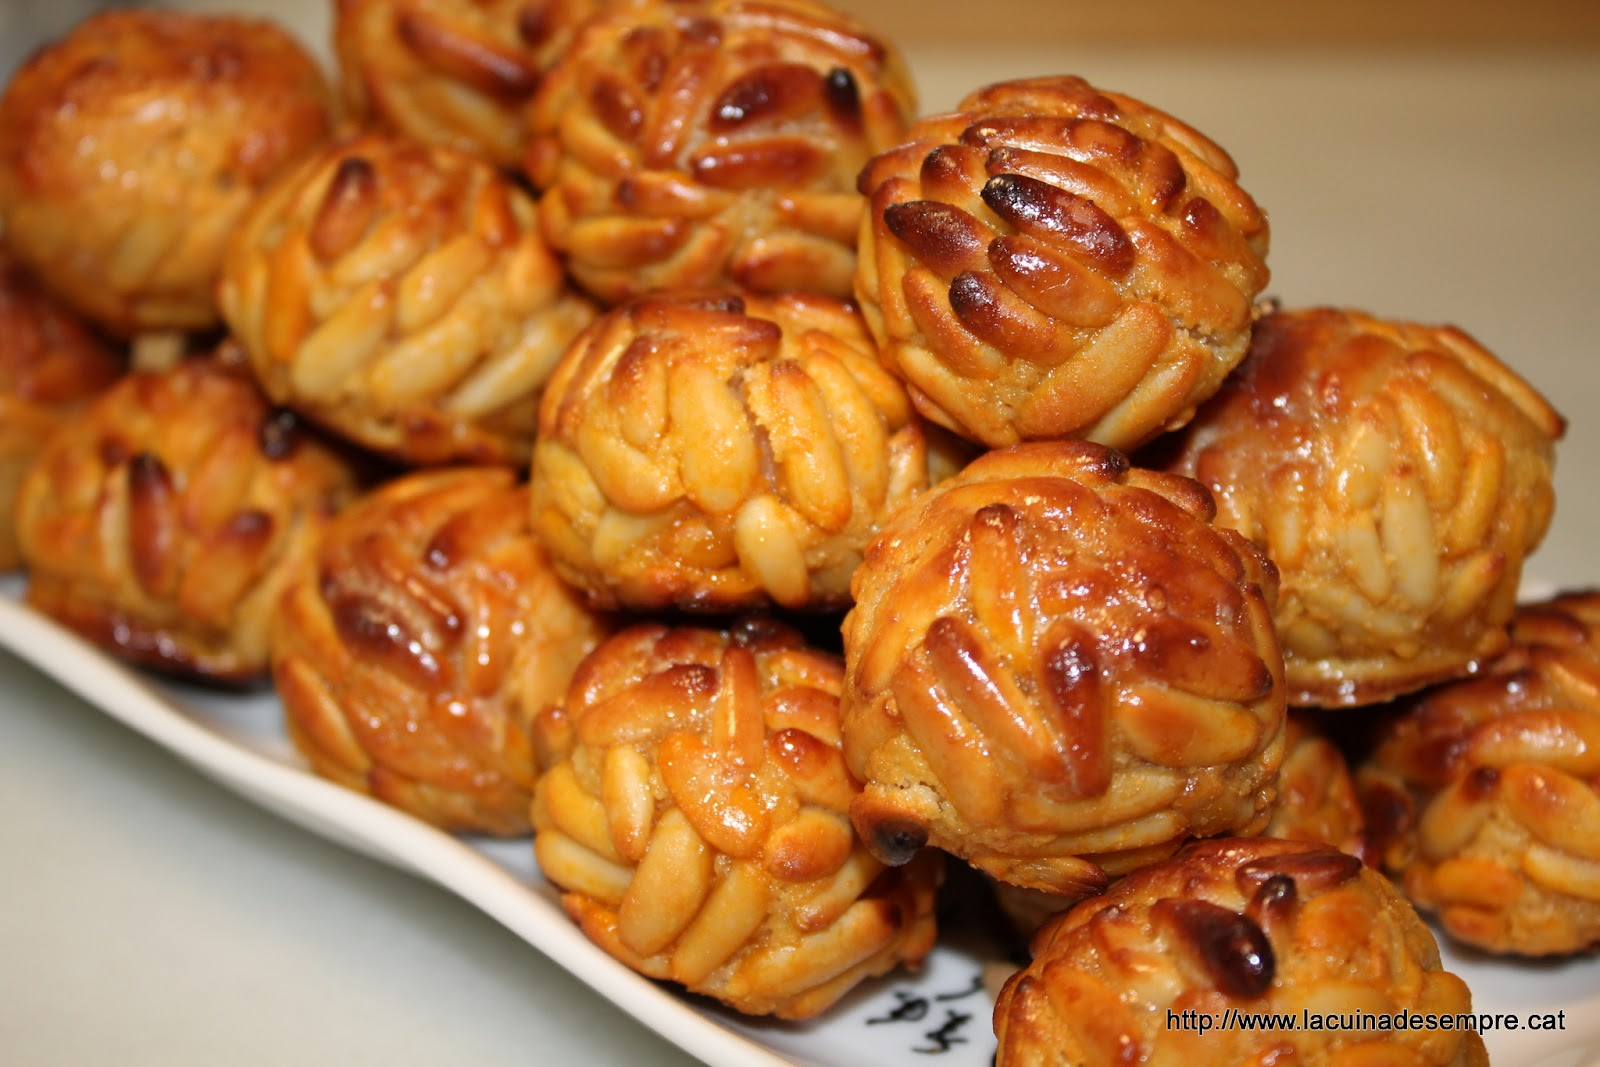 Panellets with Pine nuts